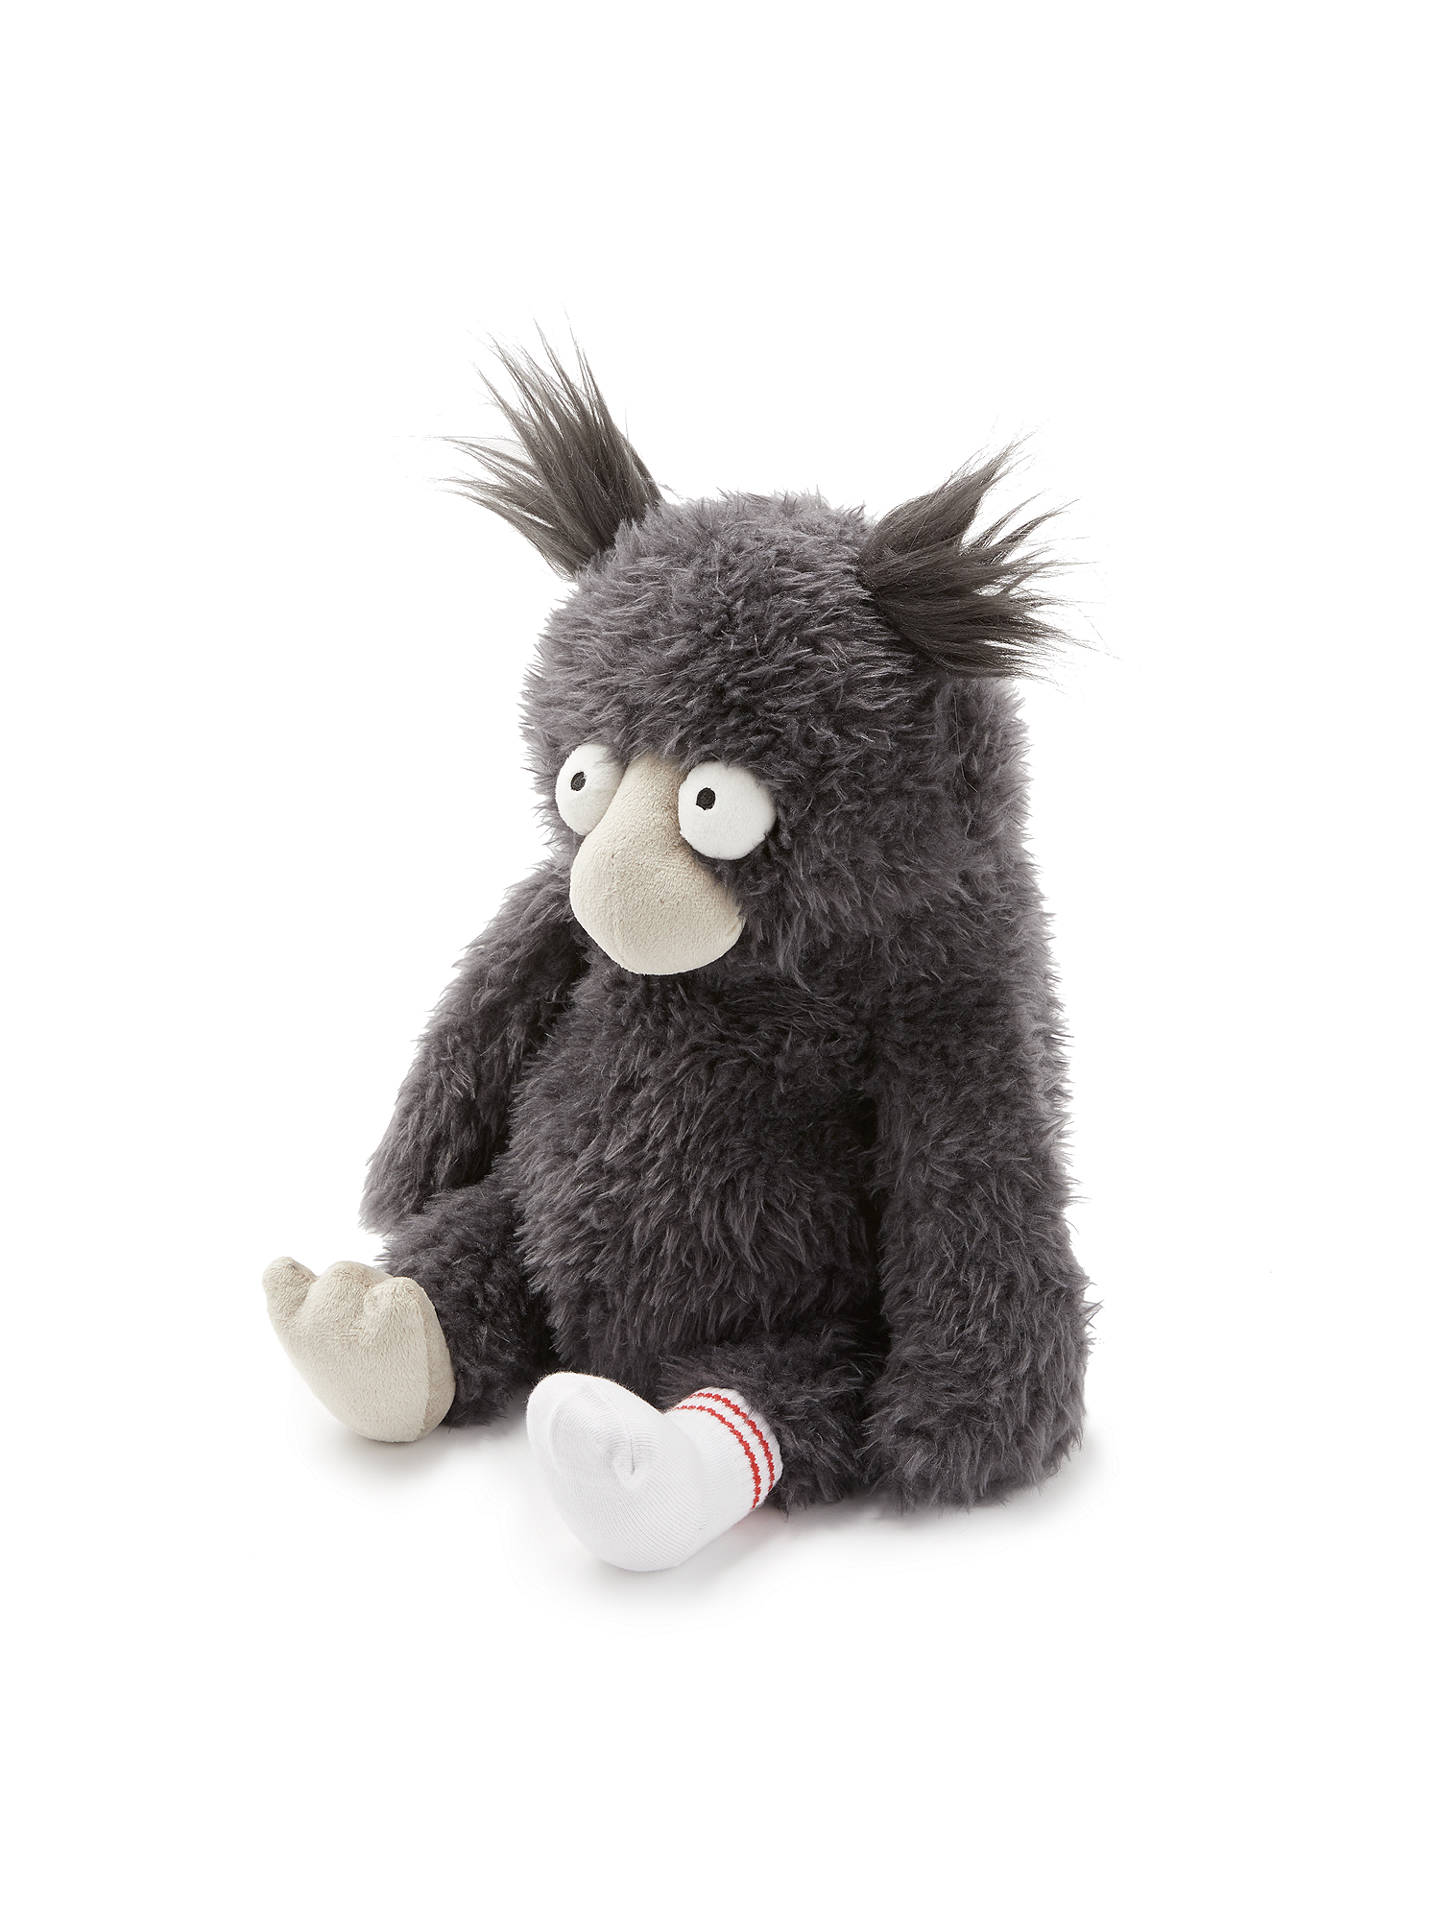 BuyJohn Lewis Moz The Monster Plush Toy Online at johnlewis.com